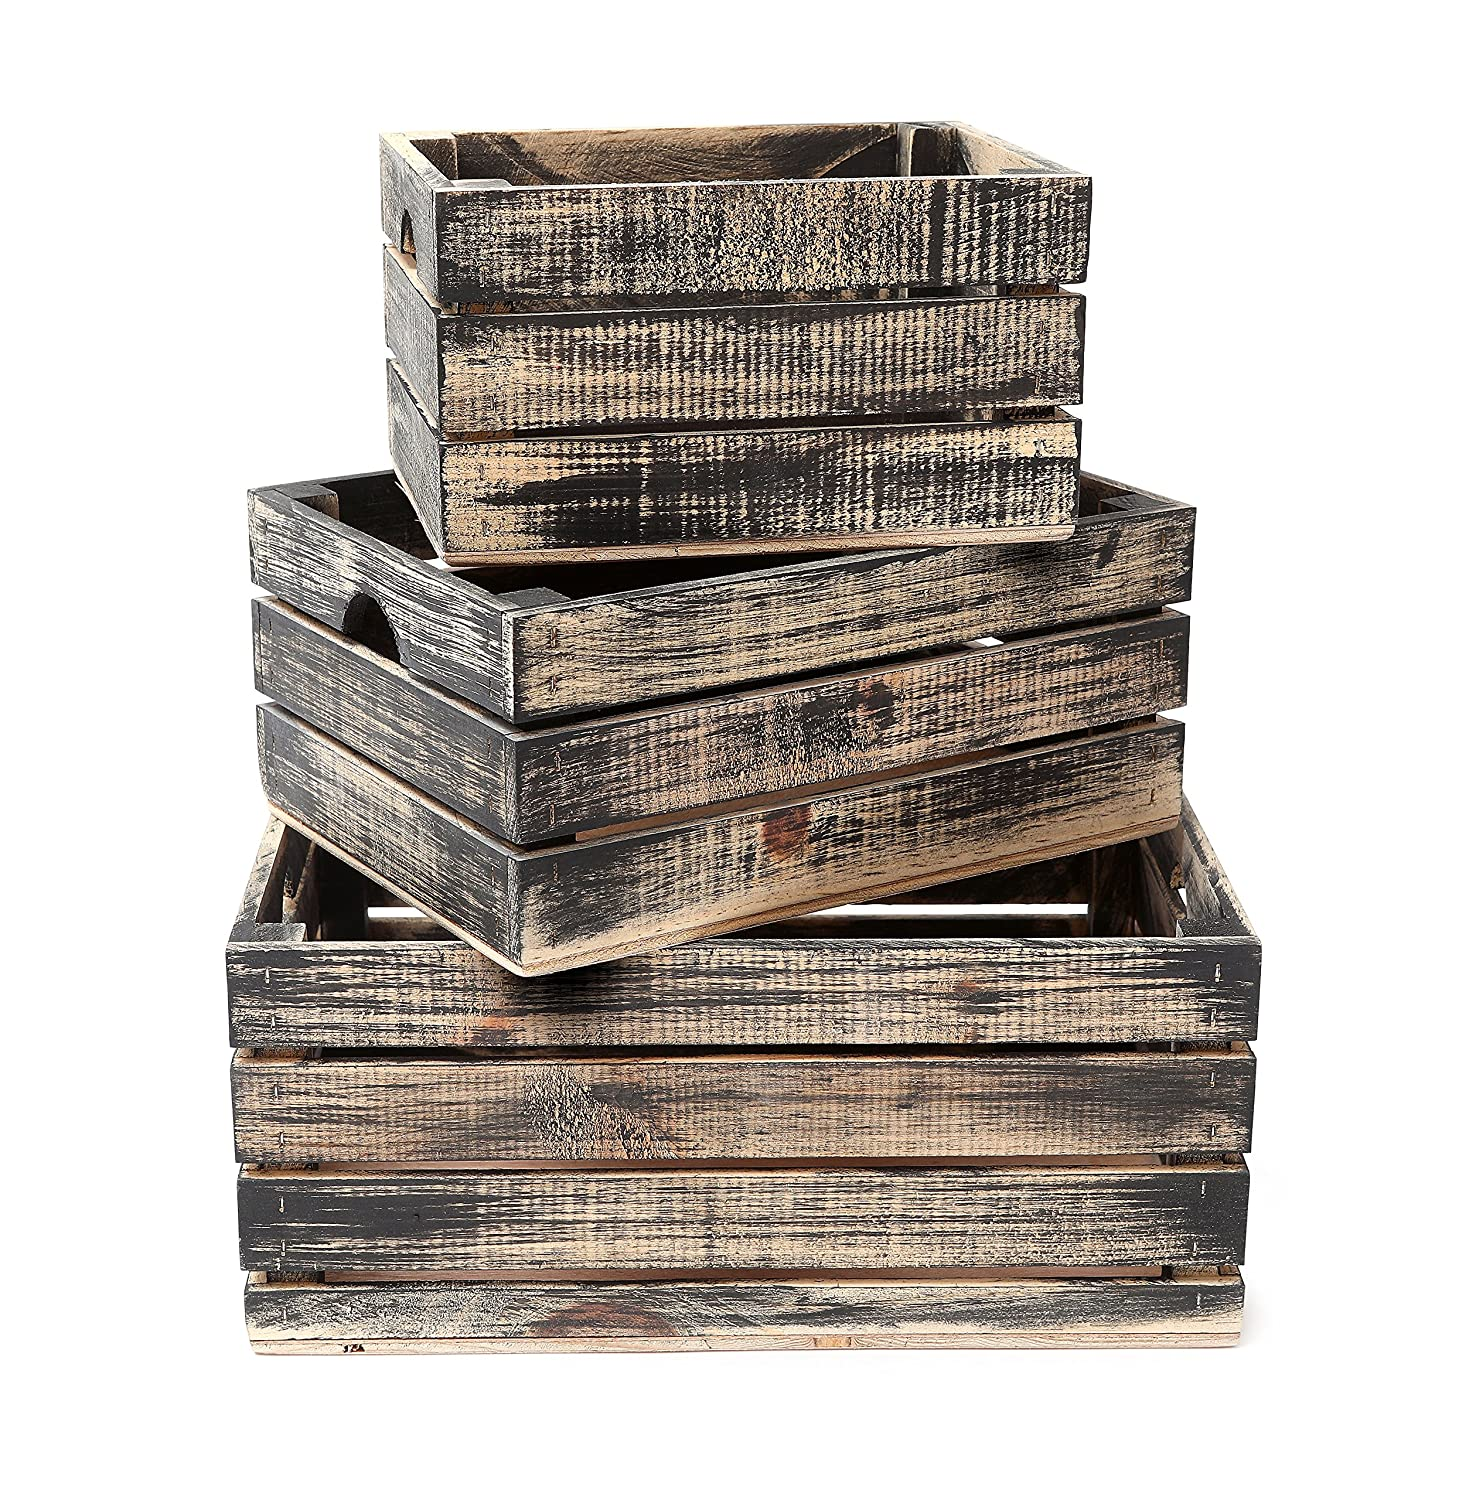 Rustic Decorative Wood Crates (Set of 3) (Black and Natural Distressed) Winship Stake and Lath Inc.